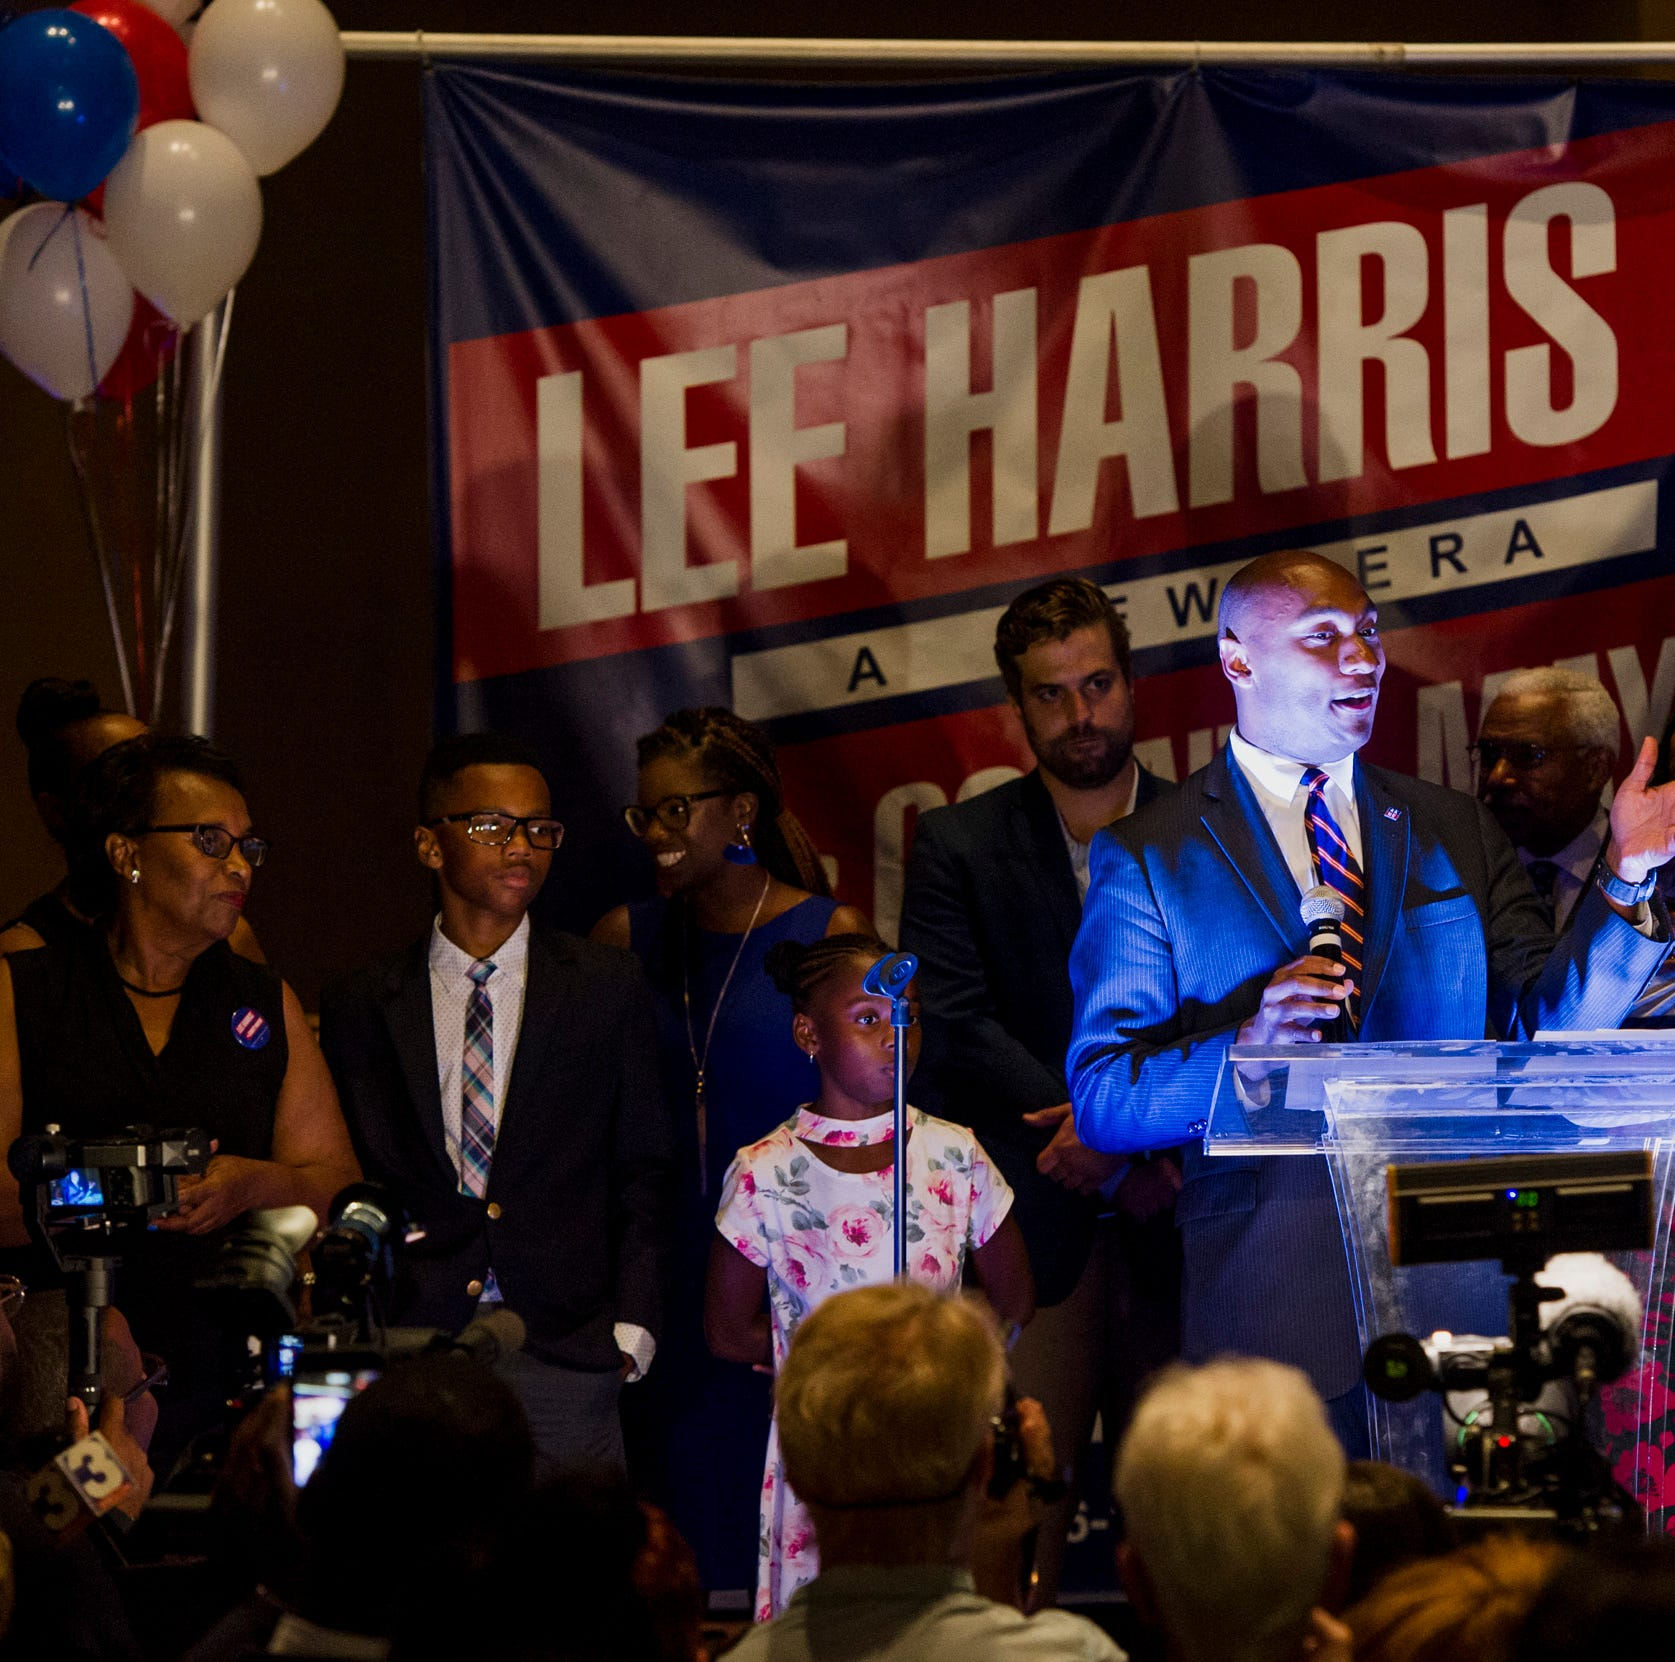 Evanoff: Looking at Lee Harris' populist vision from a pragmatist's viewpoint